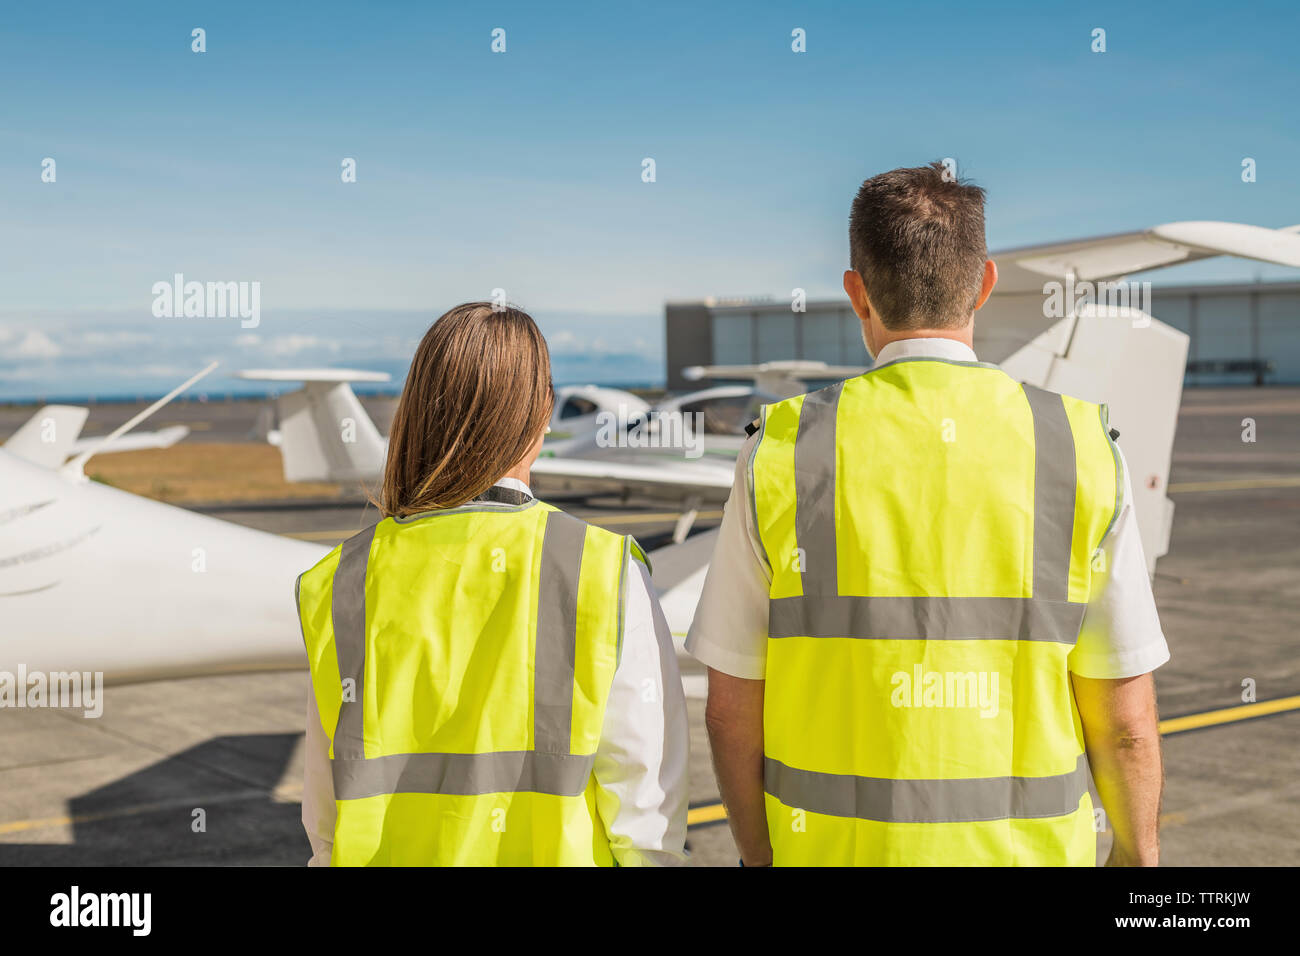 Rear view of engineers in reflective clothing standing against blue sky at airport runway - Stock Image